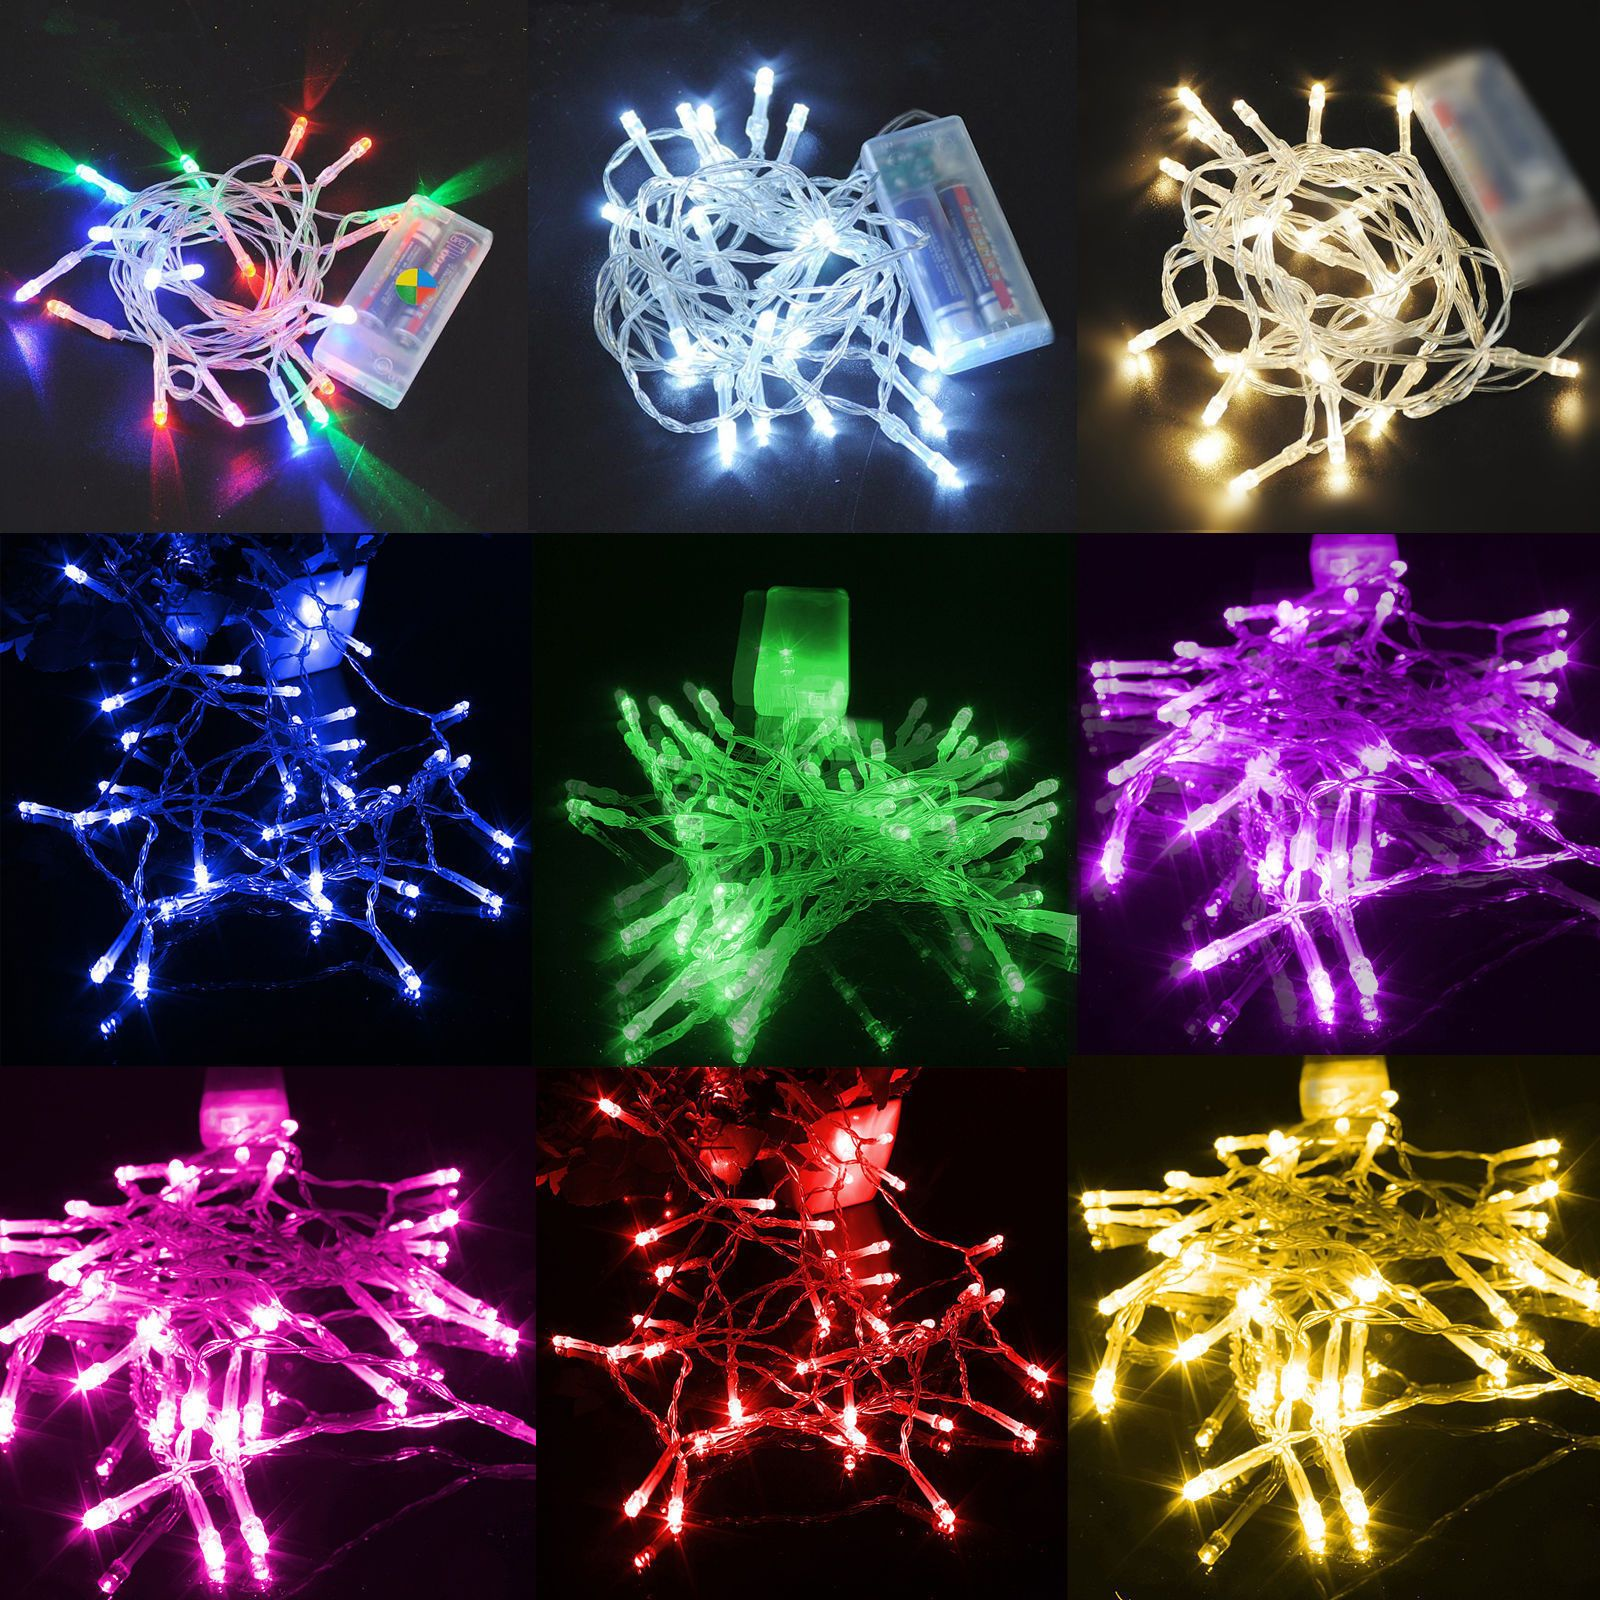 $099  1 10M Led Batterysolar Fairy String Light Outdoor Wedding